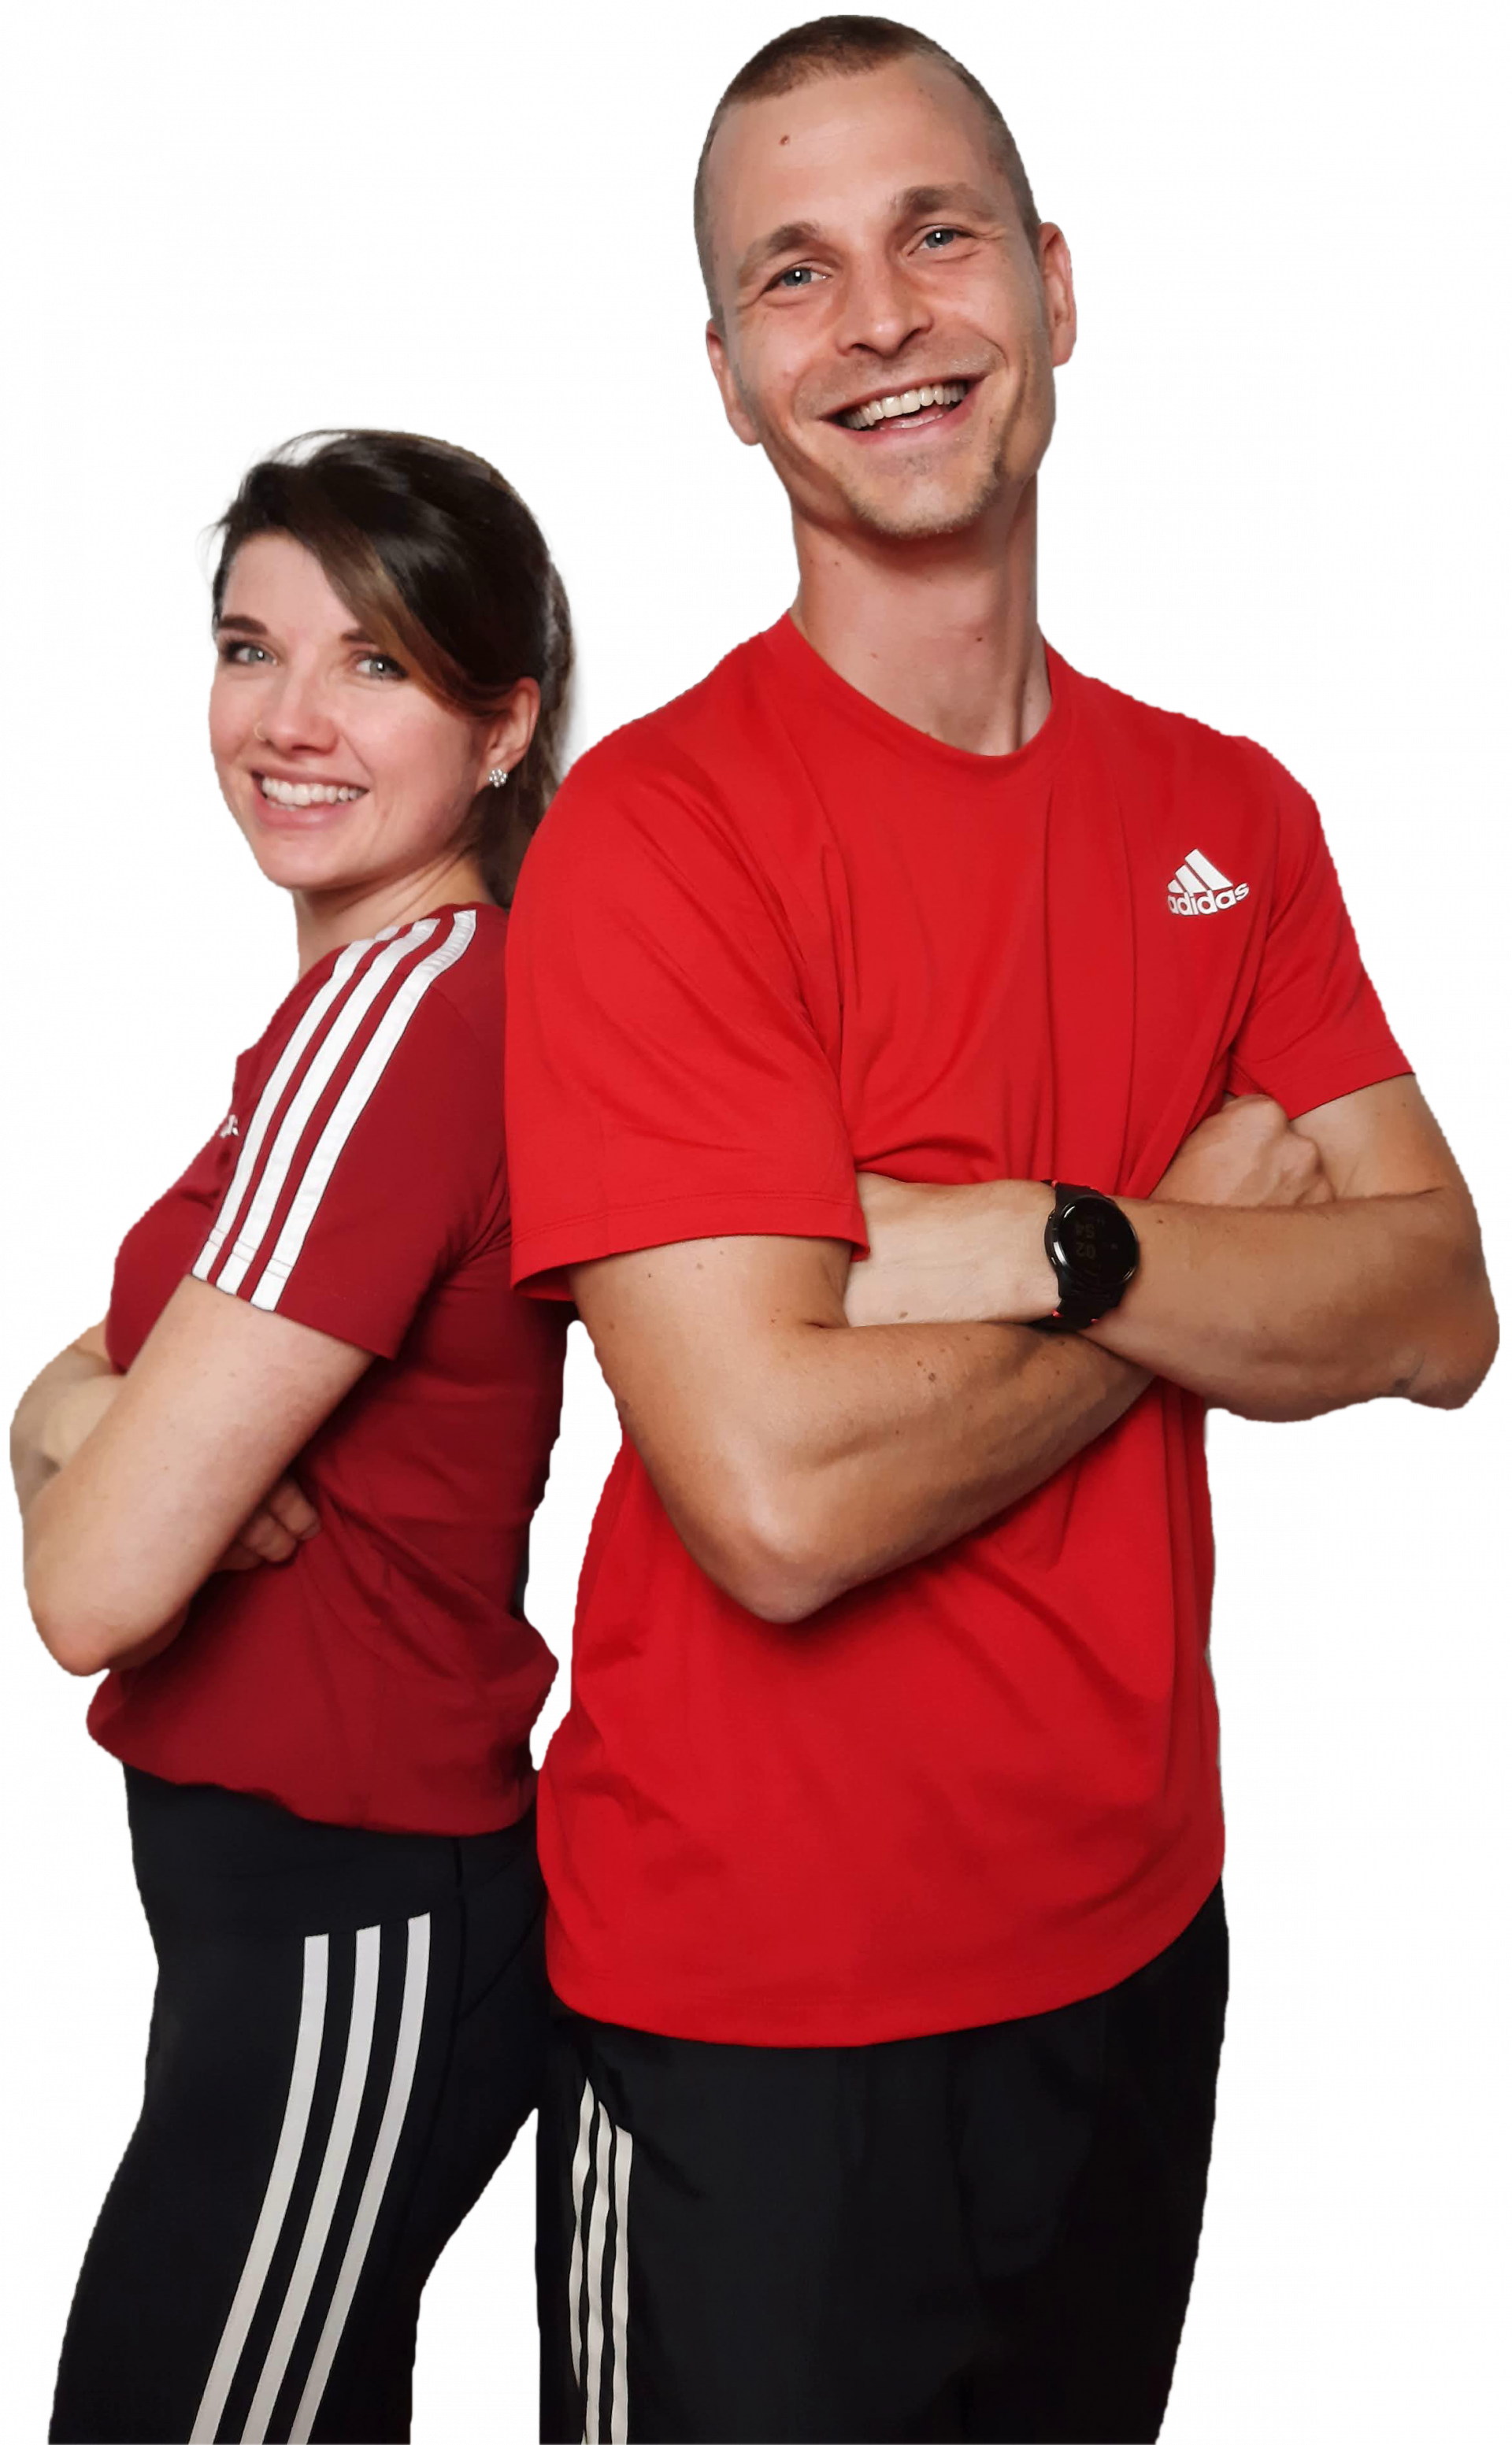 Personal Trainer in Bern: Ramona Bützer & Oliver Zachara im Trainingsoutfit | OZ Personal Training